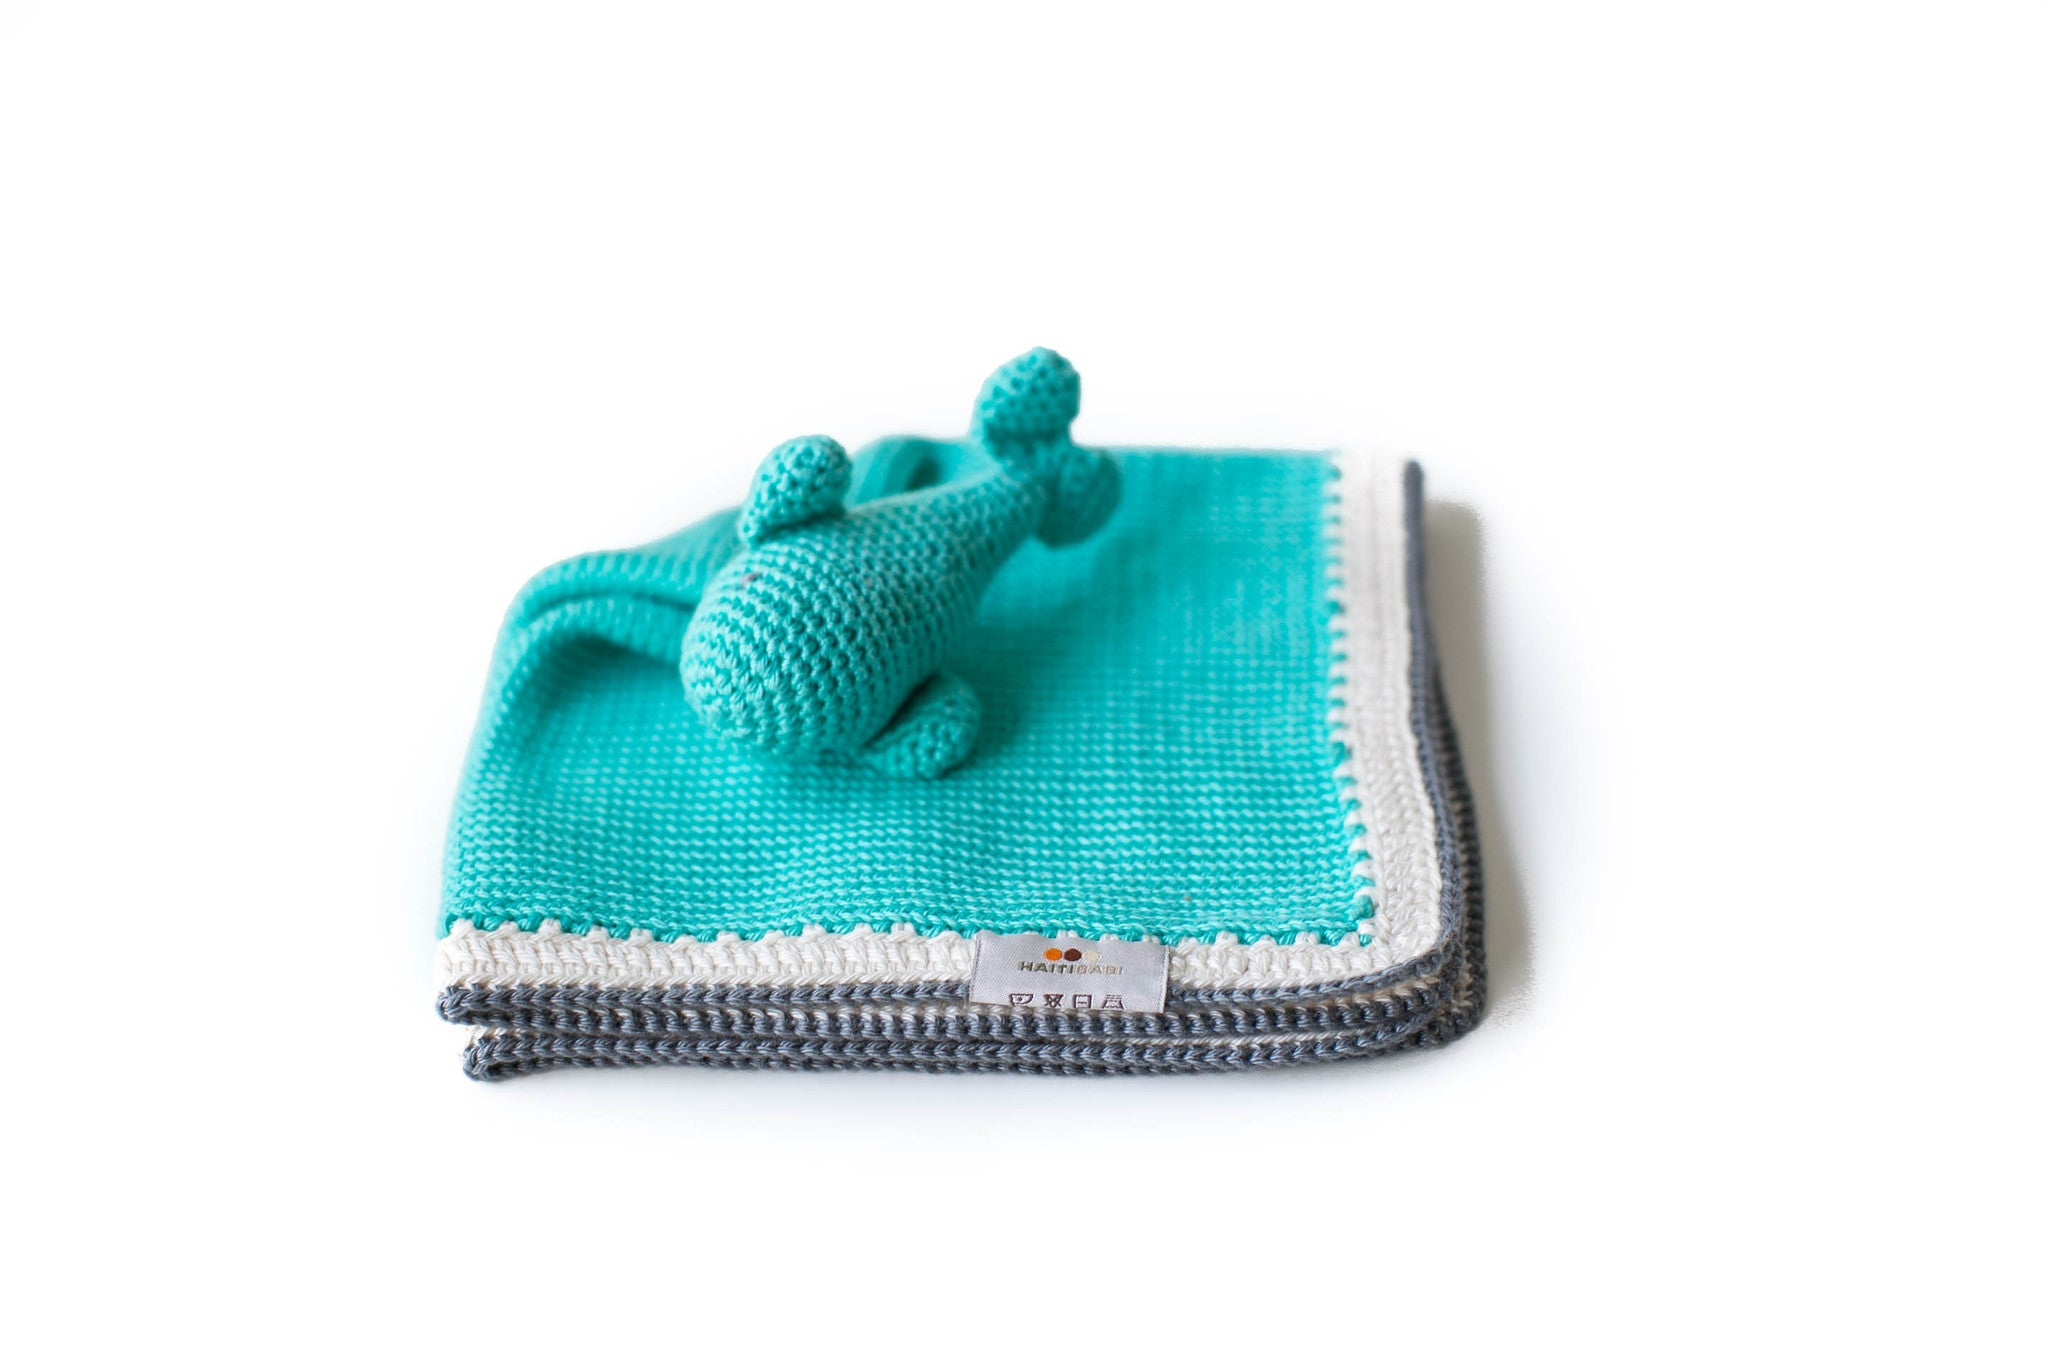 Handmade Whale Lovey in Teal -1